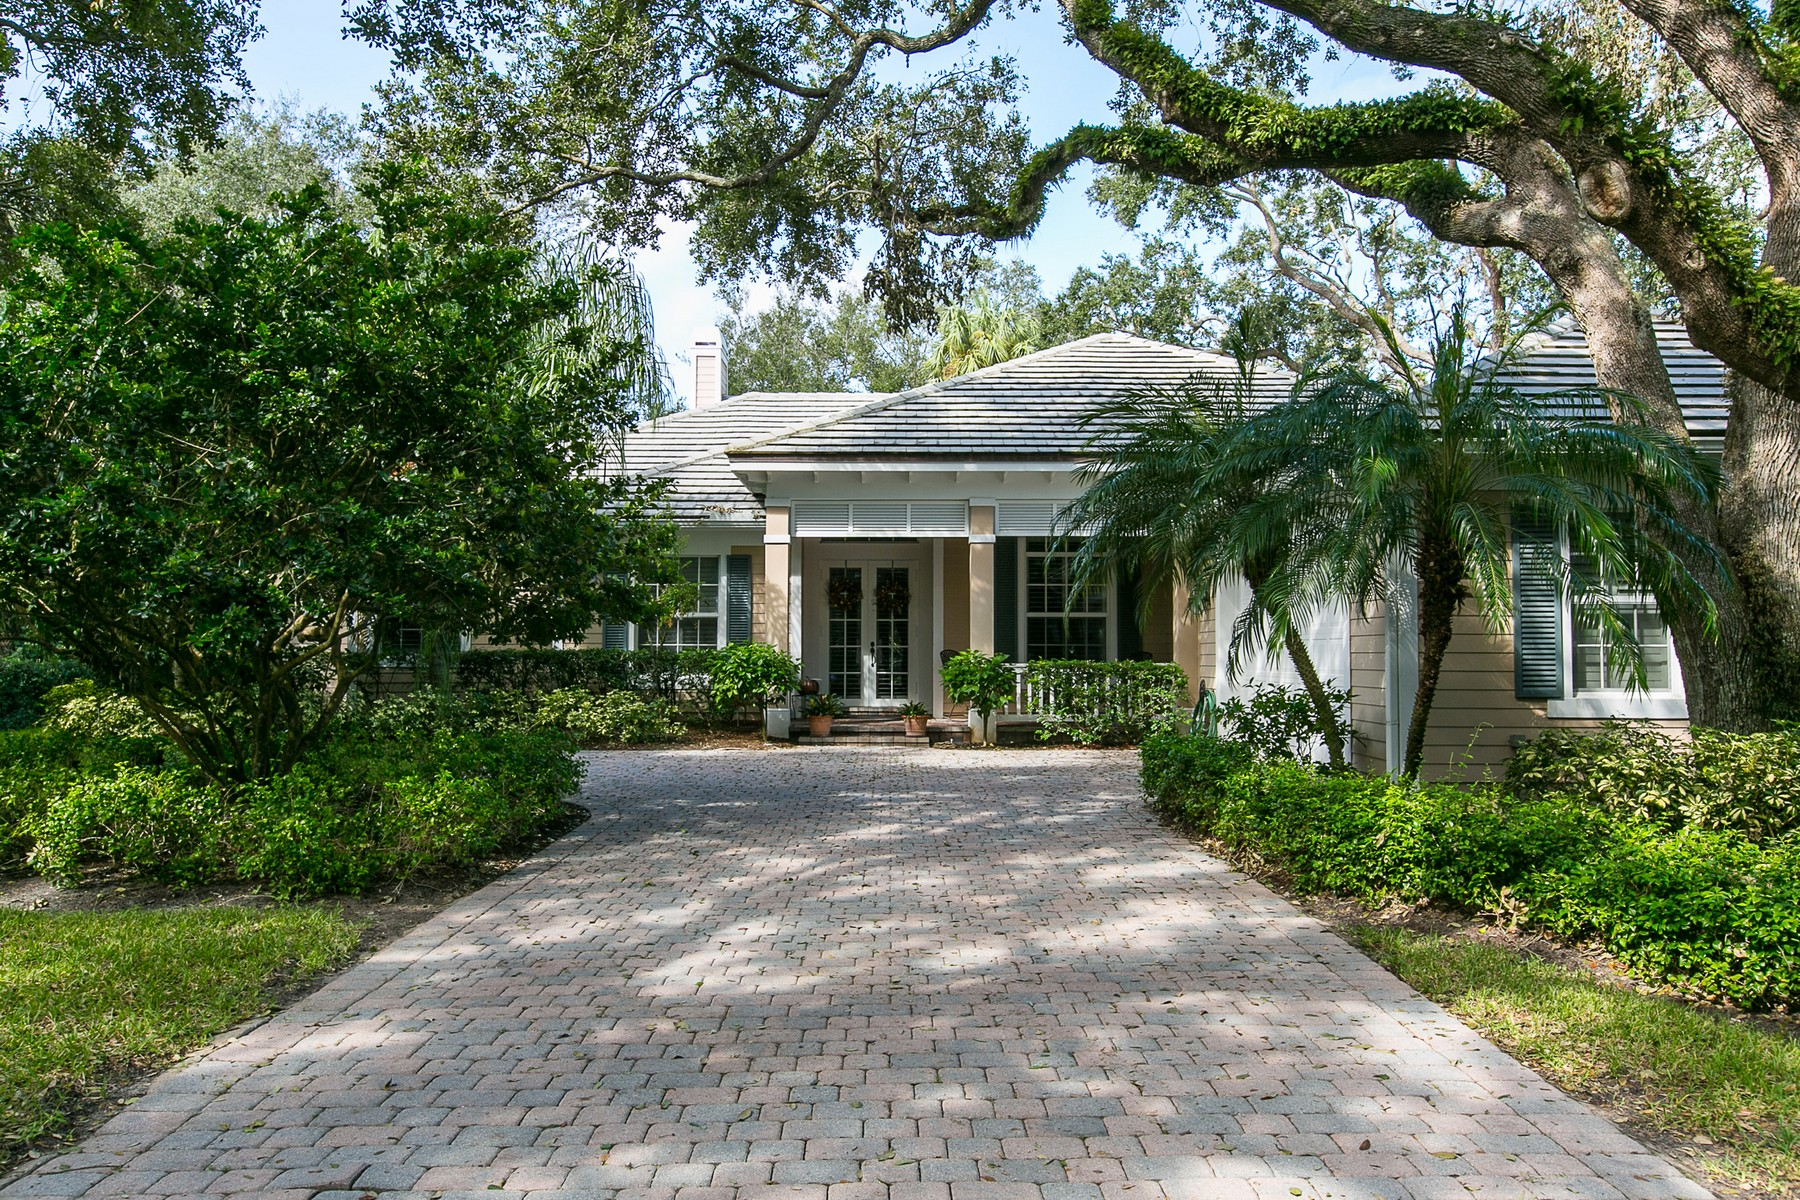 Single Family Home for Sale at Elegant Custom Home in Indian Trails 671 N Tomahawk Trl Indian River Shores, Florida, 32963 United States